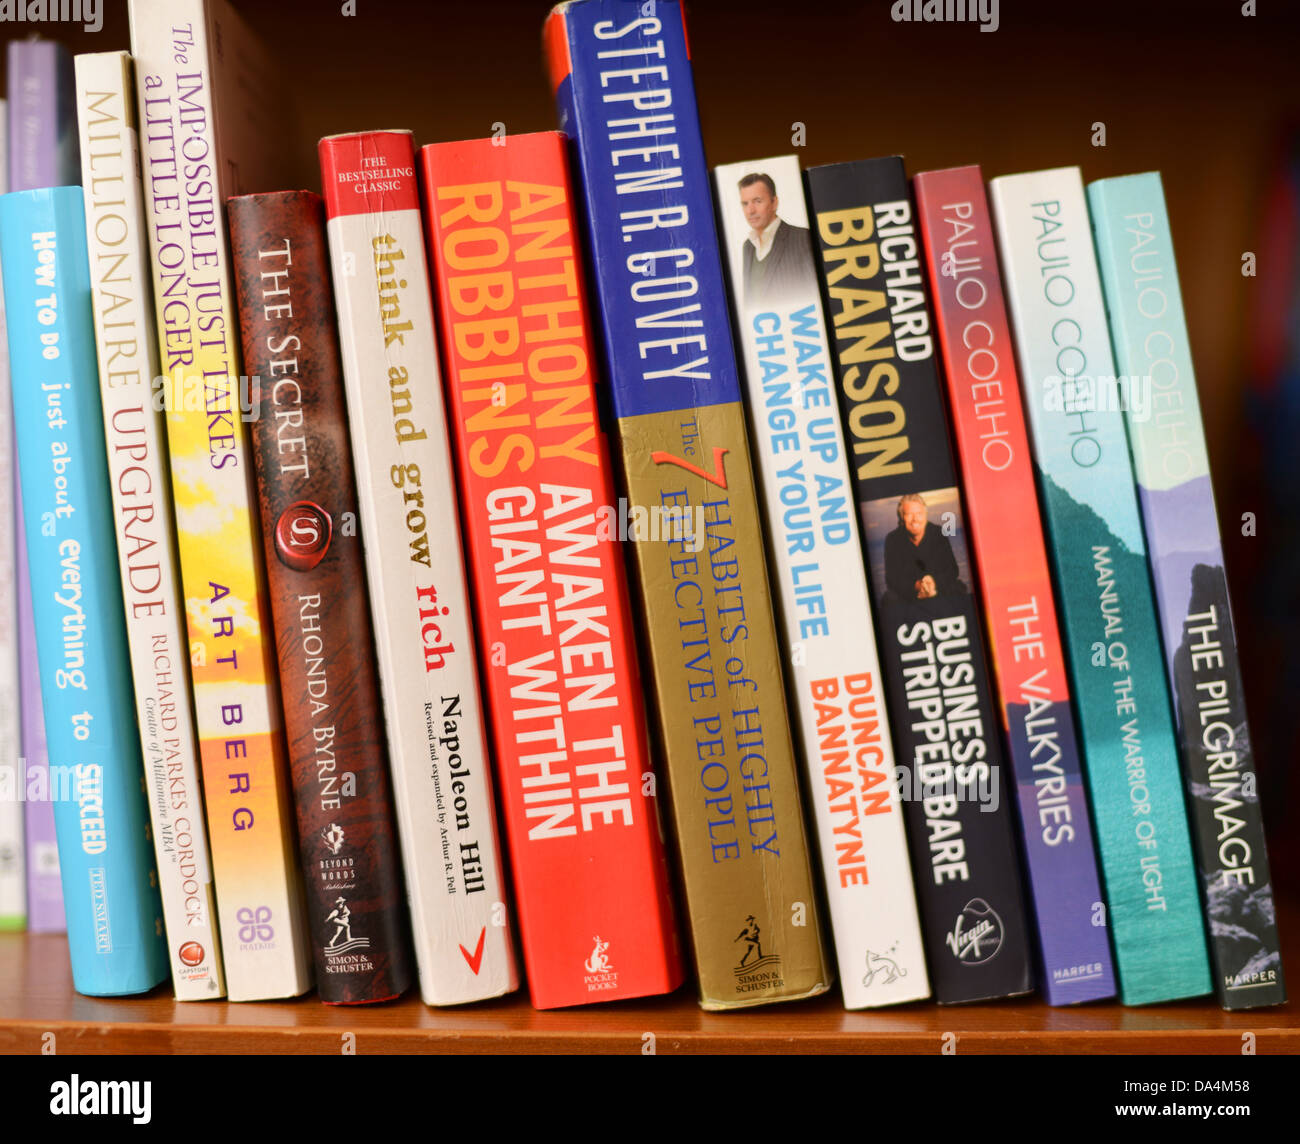 Self Help Books On A Bookshelf Stock Photo 57881300 Alamy